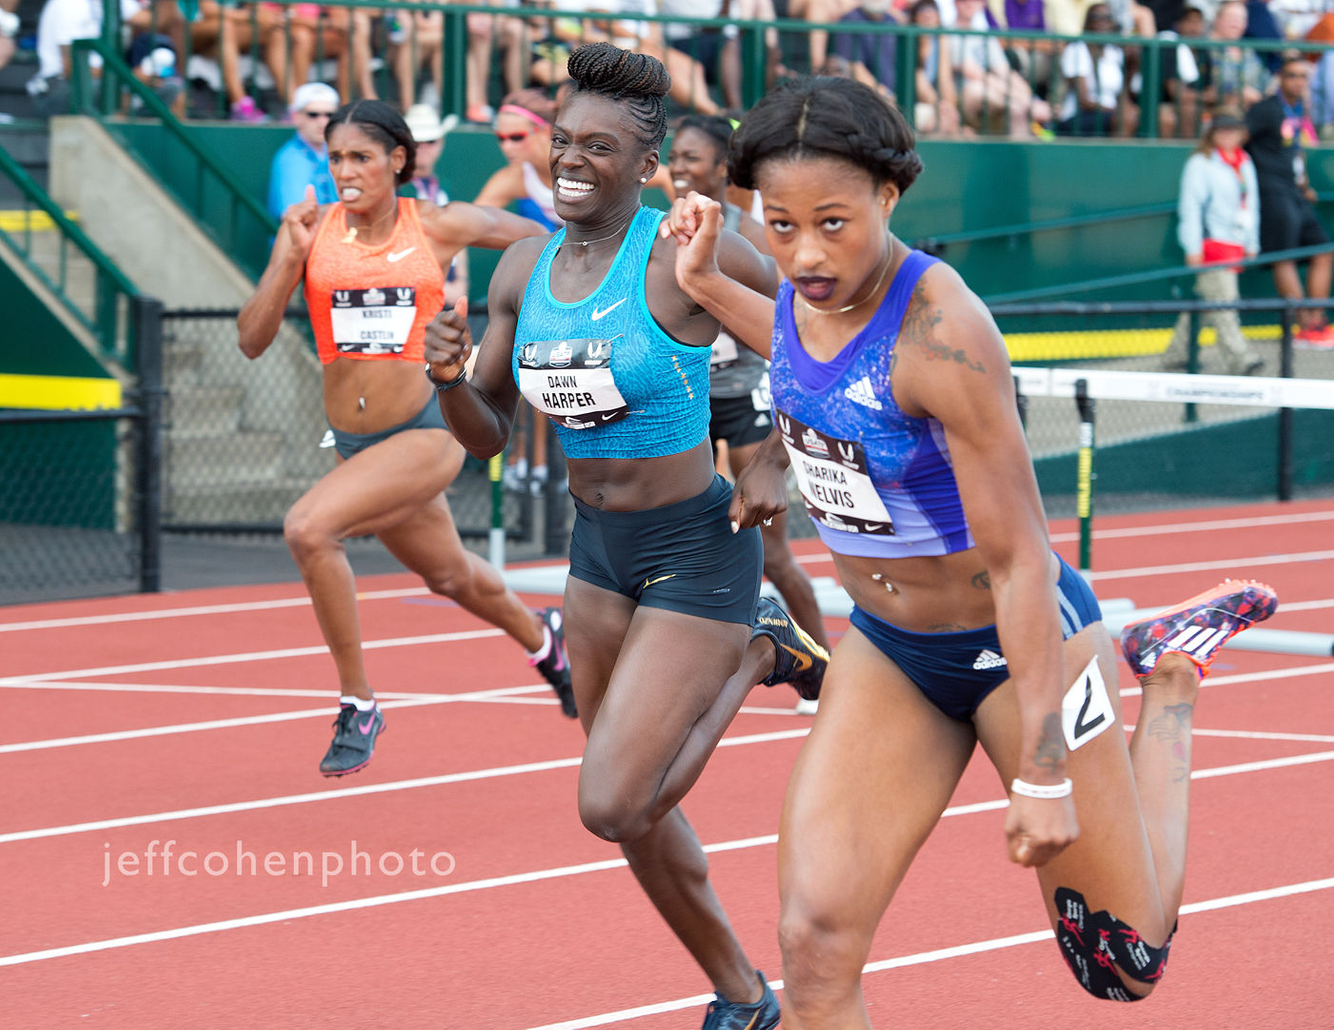 1r2015_usaoutdoors_dawn_100hw_jeff_cohen0424_web.jpg